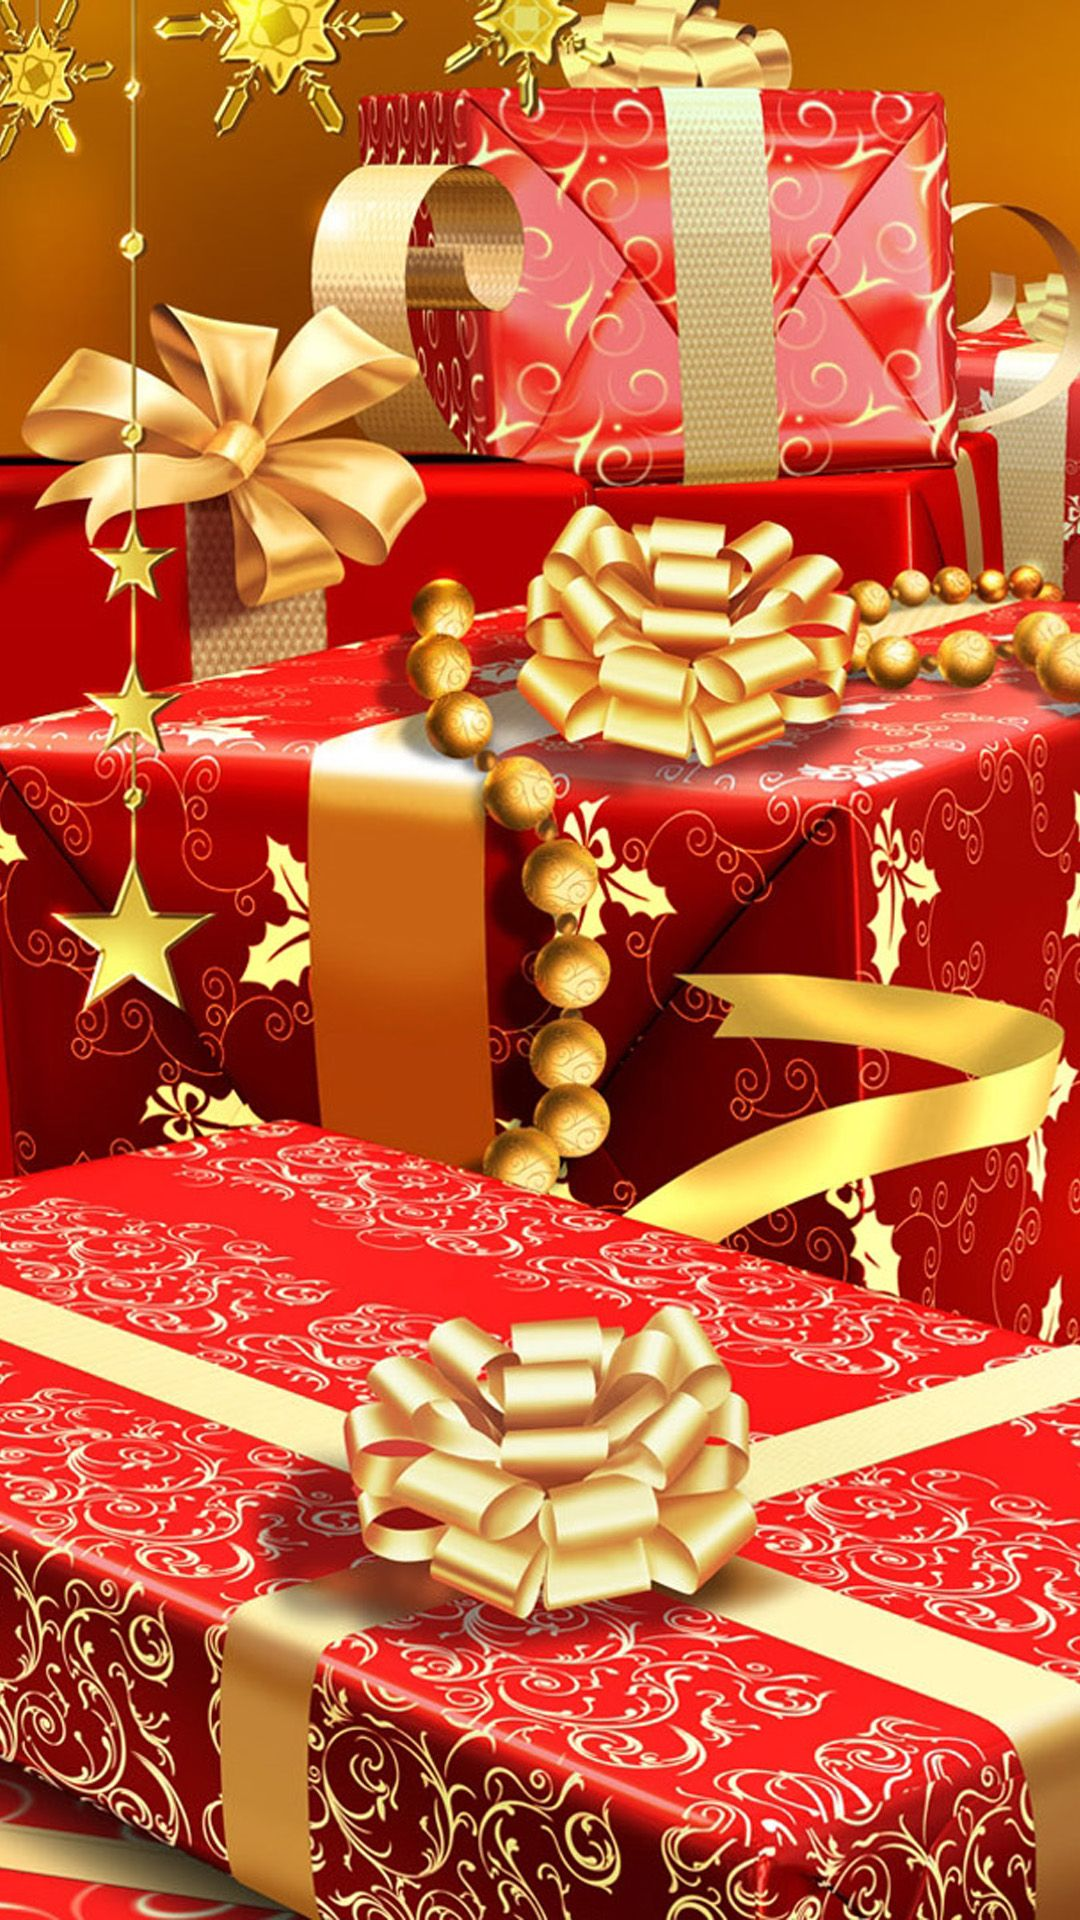 Rich Christmas Gifts Iphone 6 Wallpaper Download Iphone Wallpapers Ipad Wallpapers On Wallpaper Iphone Christmas Christmas Wallpaper Christmas Wallpaper Hd